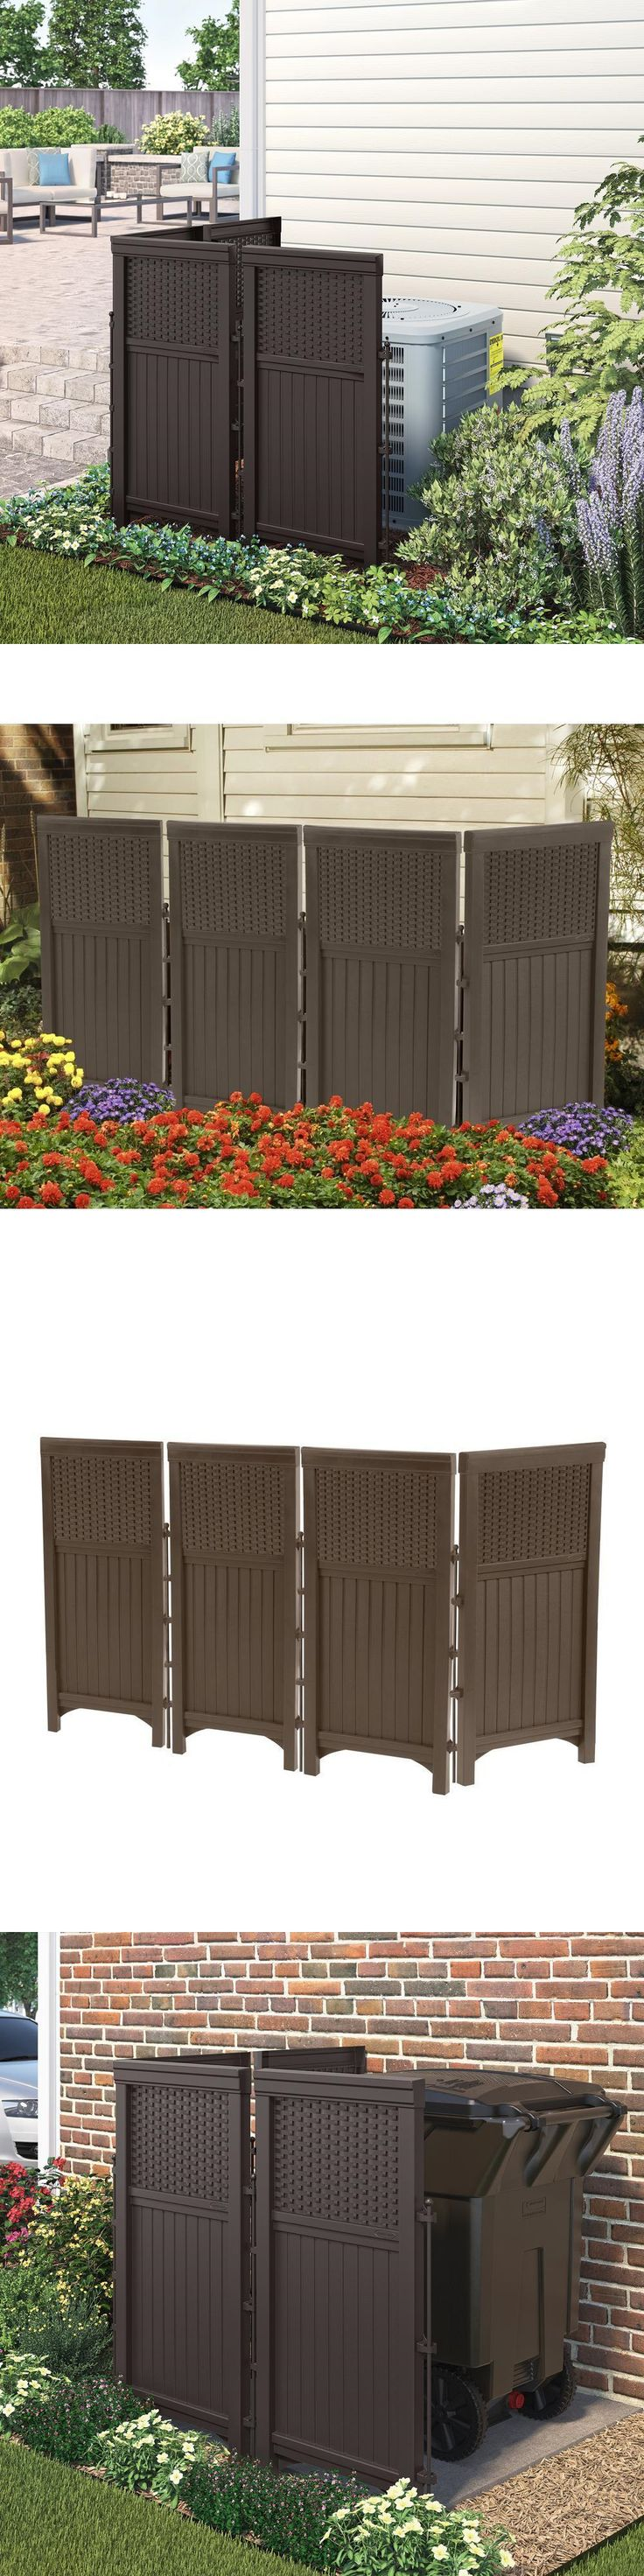 Fence Panels 139946: Wicker 44In Resin Decorative Screen Enclosure Patio  Hide Air Conditioner Ac Yard